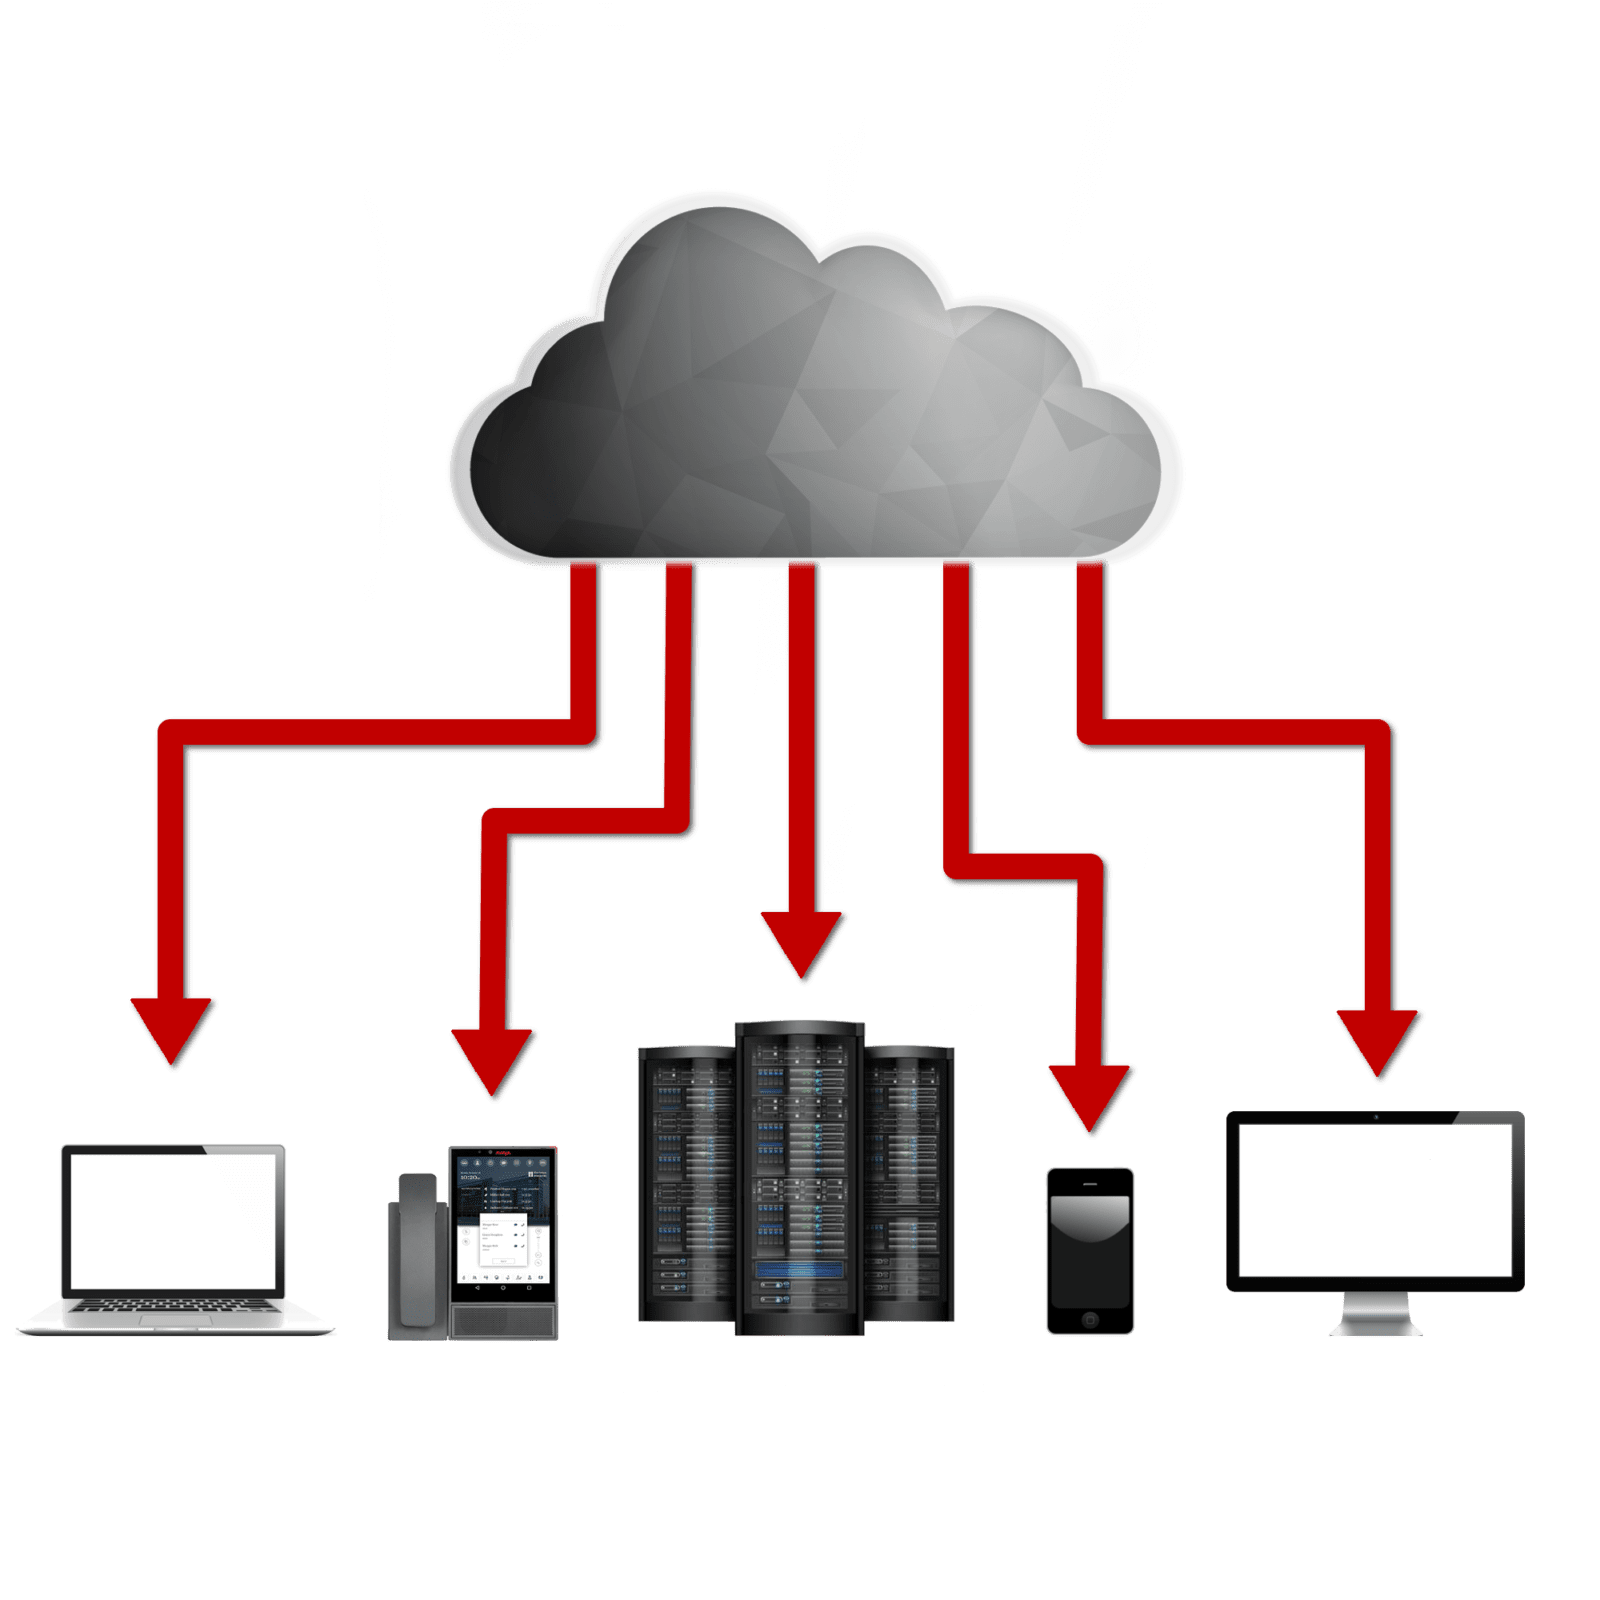 Cloud linking laptop, soft phone, server, cell phone, and desktop monitor